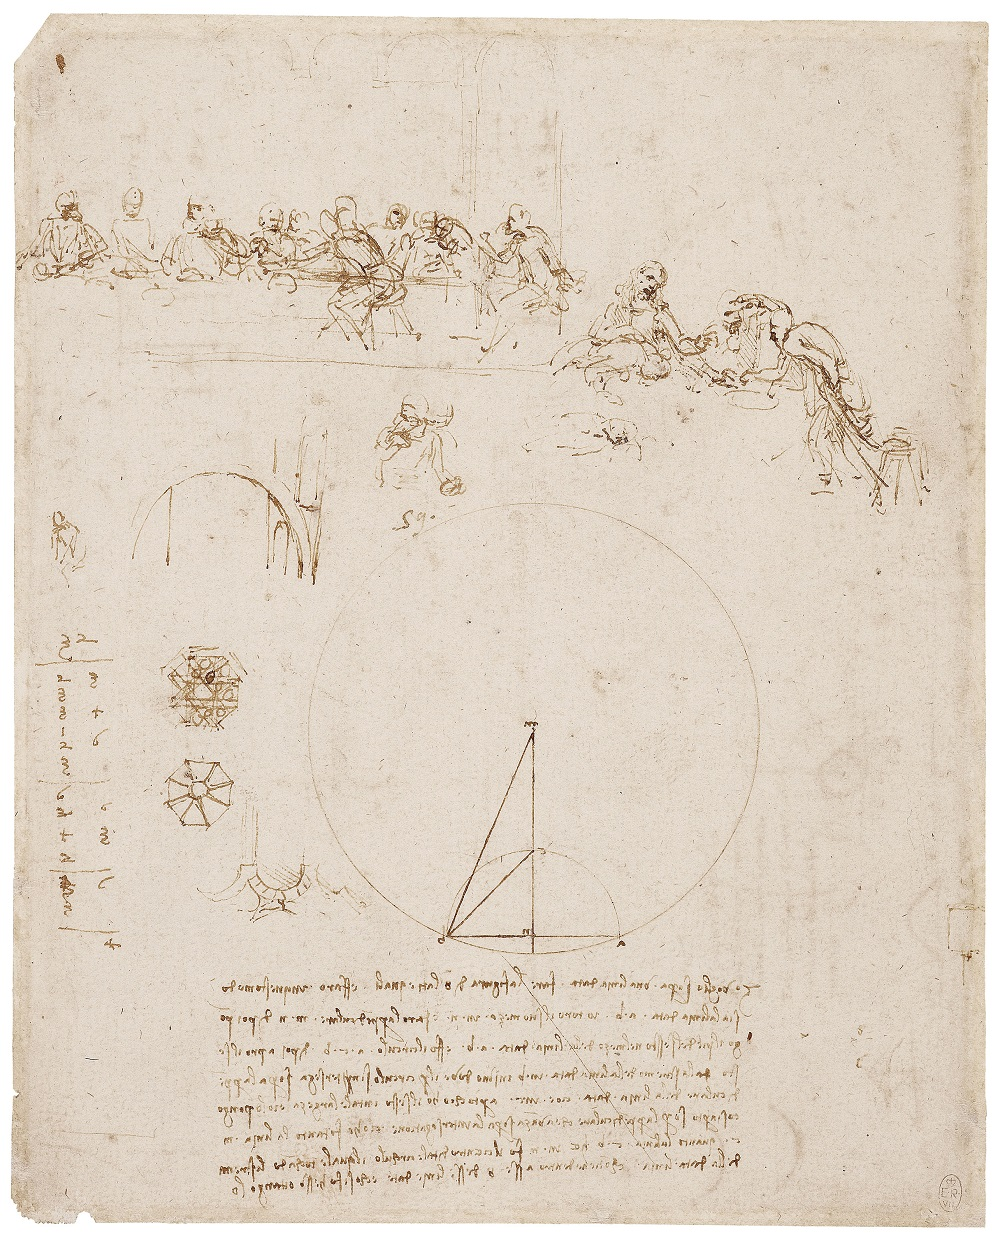 Leonardo da Vinci, Sketches for the Last Supper, and other studies